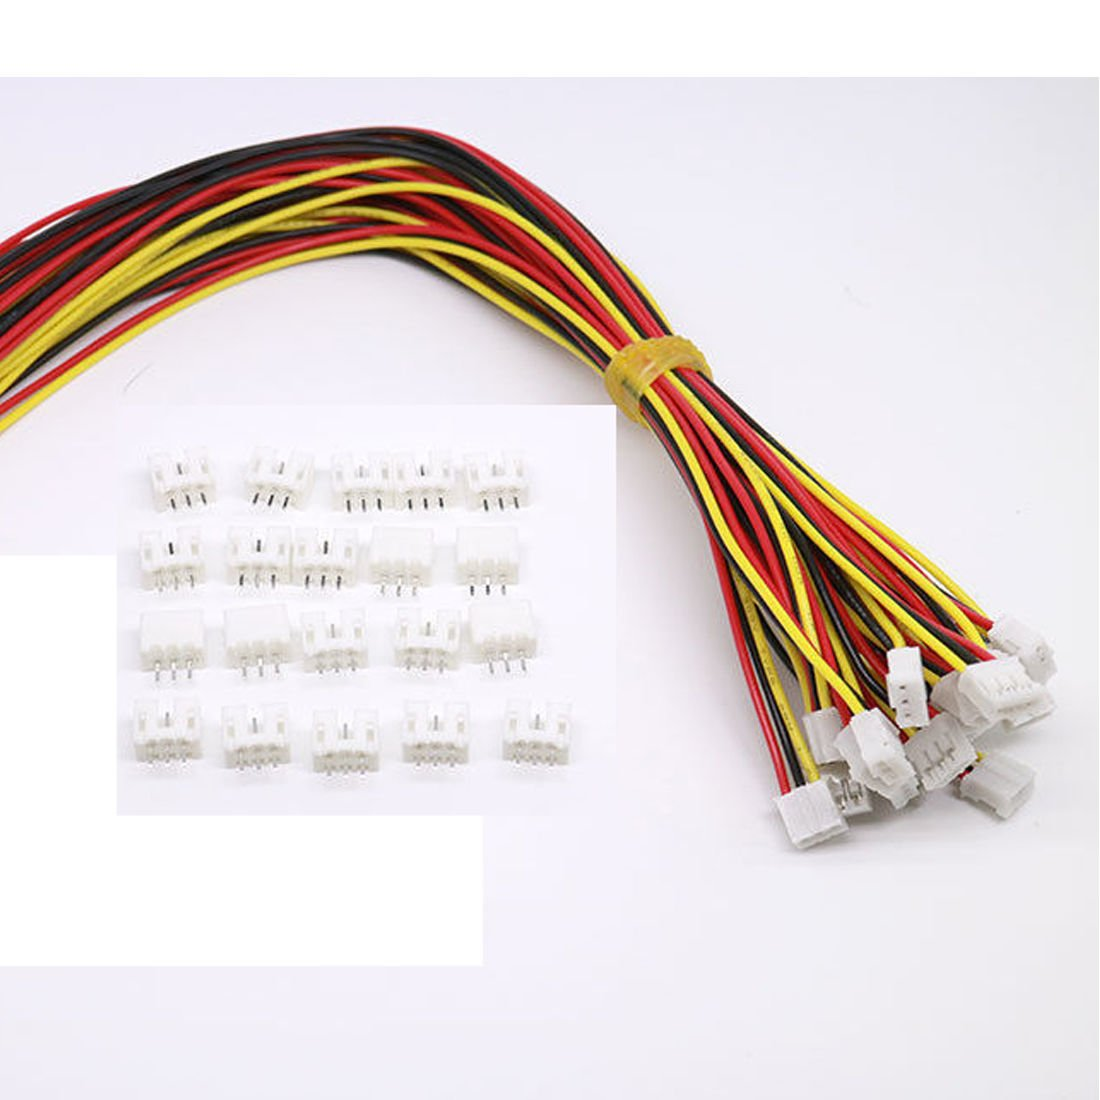 10 Sets Mini Micro Jst 2.0 Ph 3 Pin Connector Plug Male With 150mm Cable & Female daier